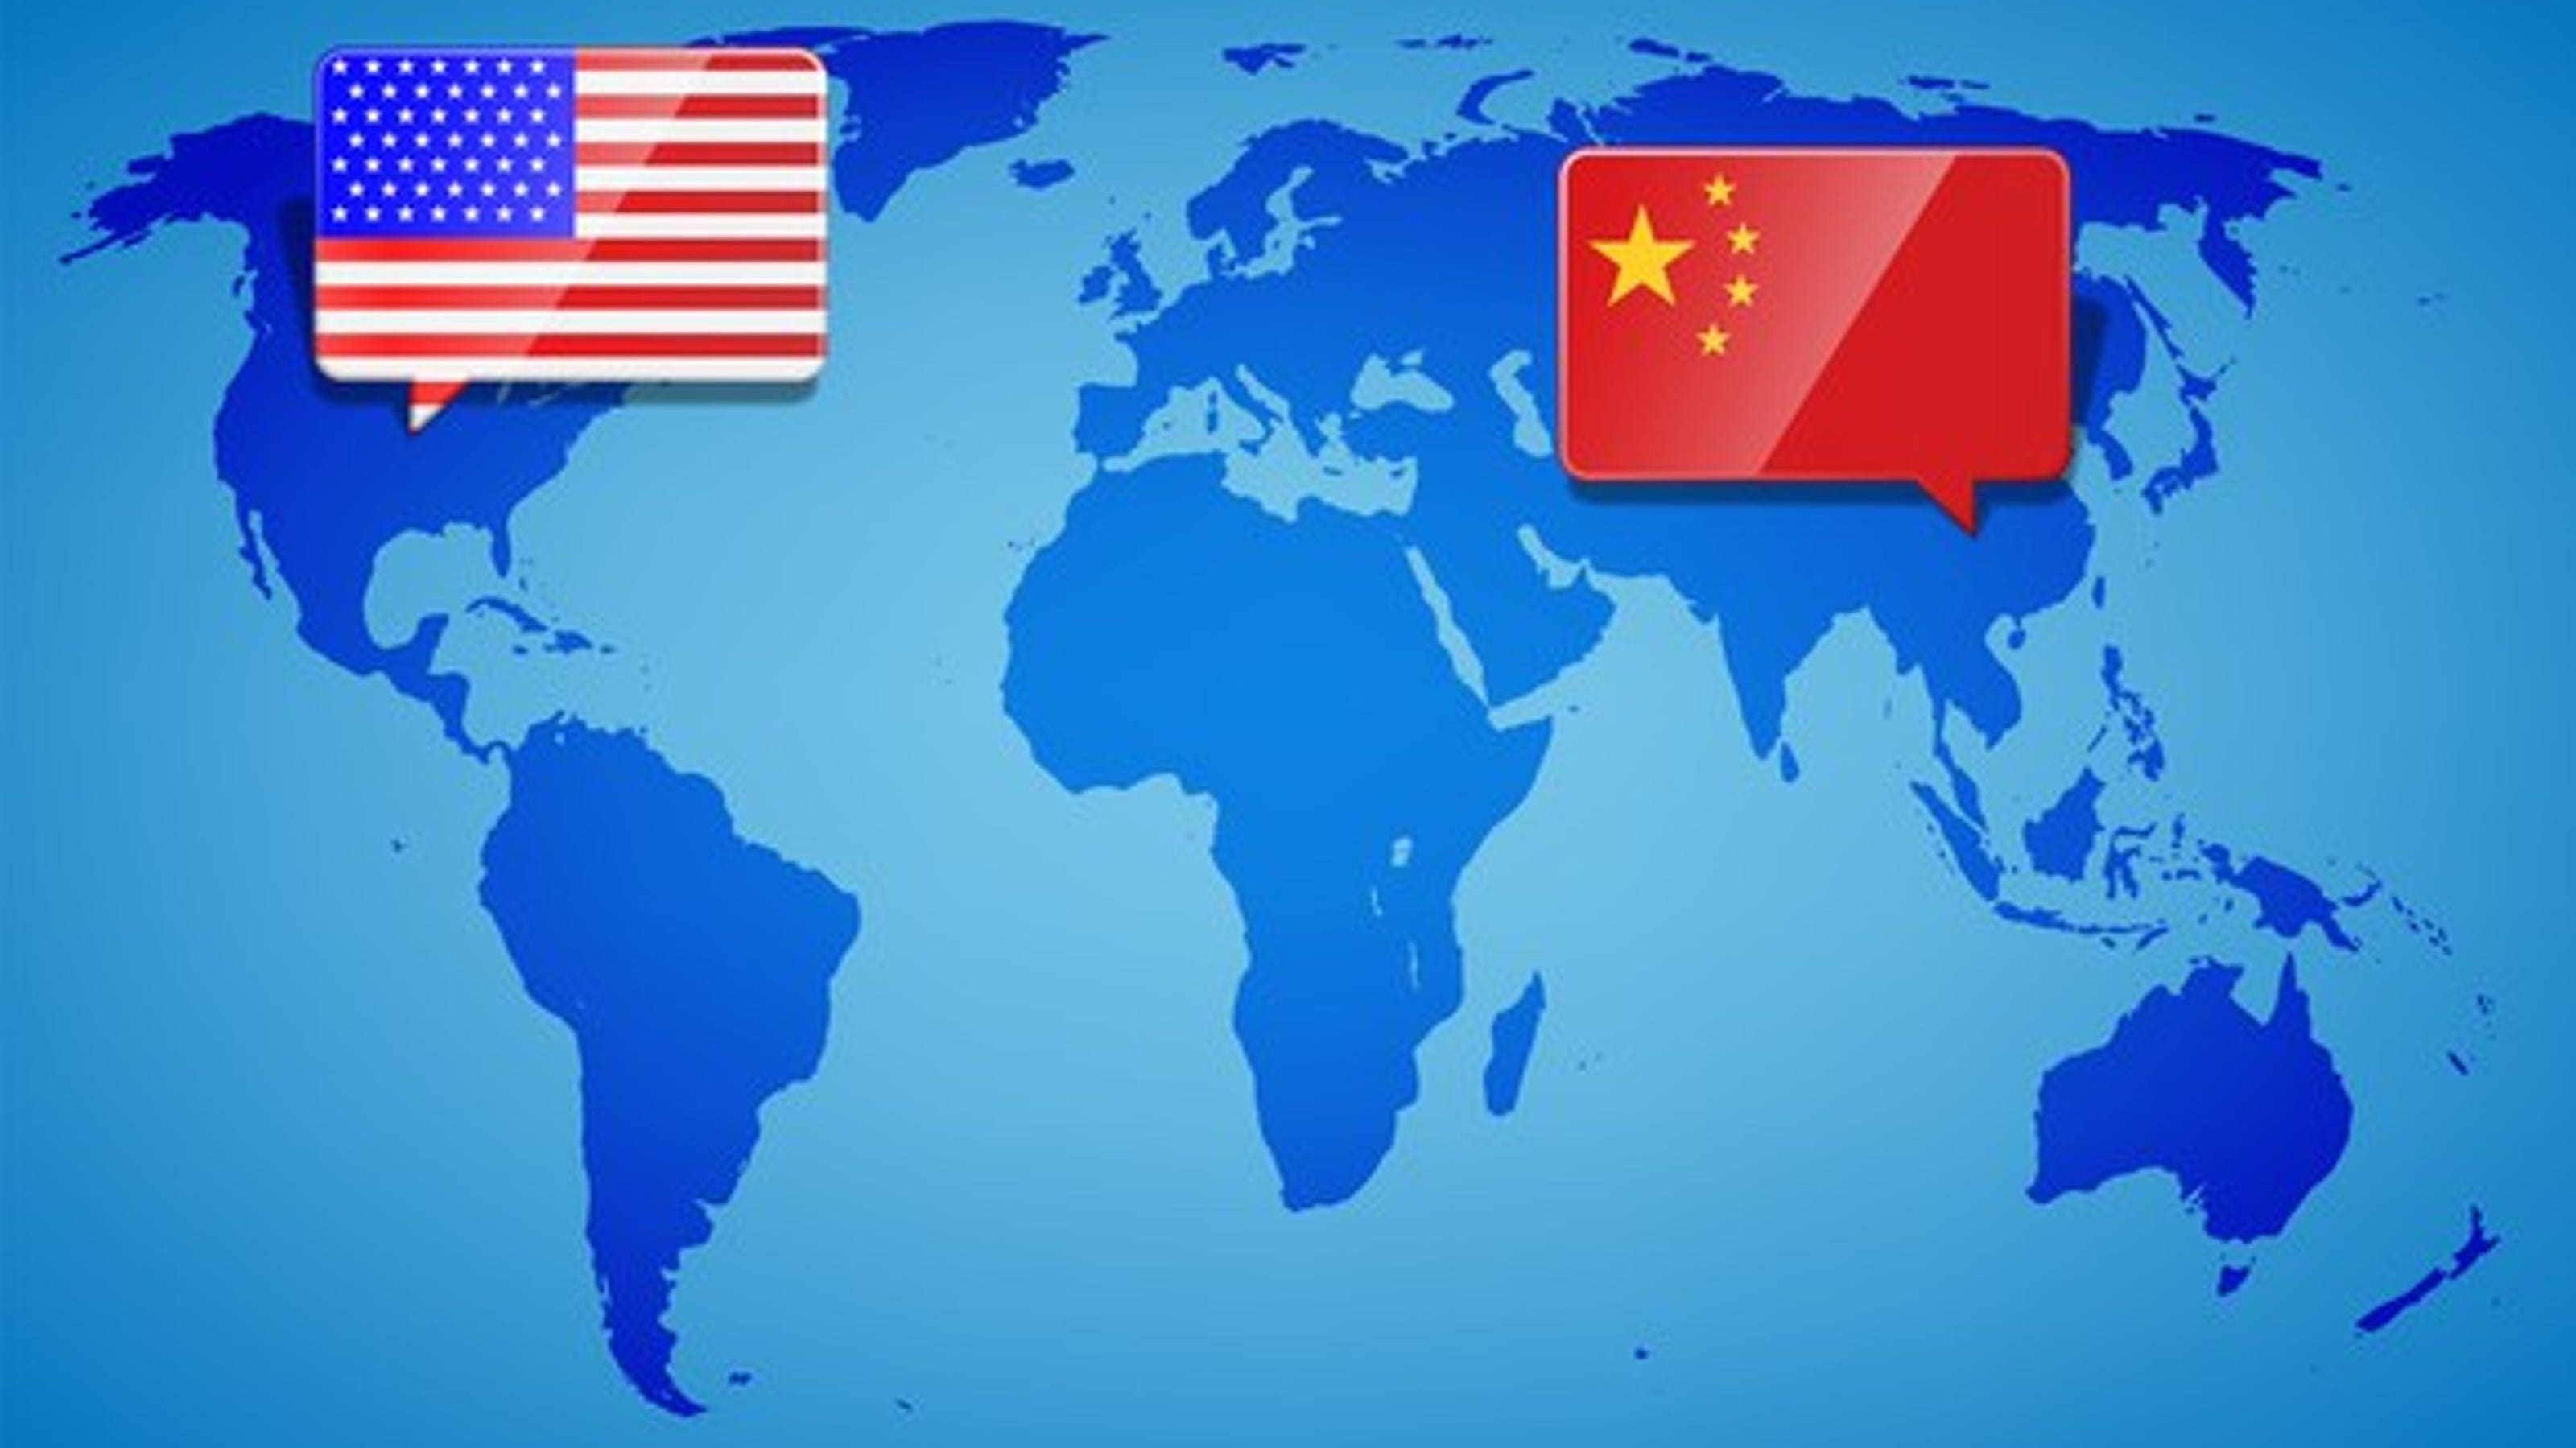 China And Us Map.Trade War Trump Expresses Optimism About U S Trade Deal With China